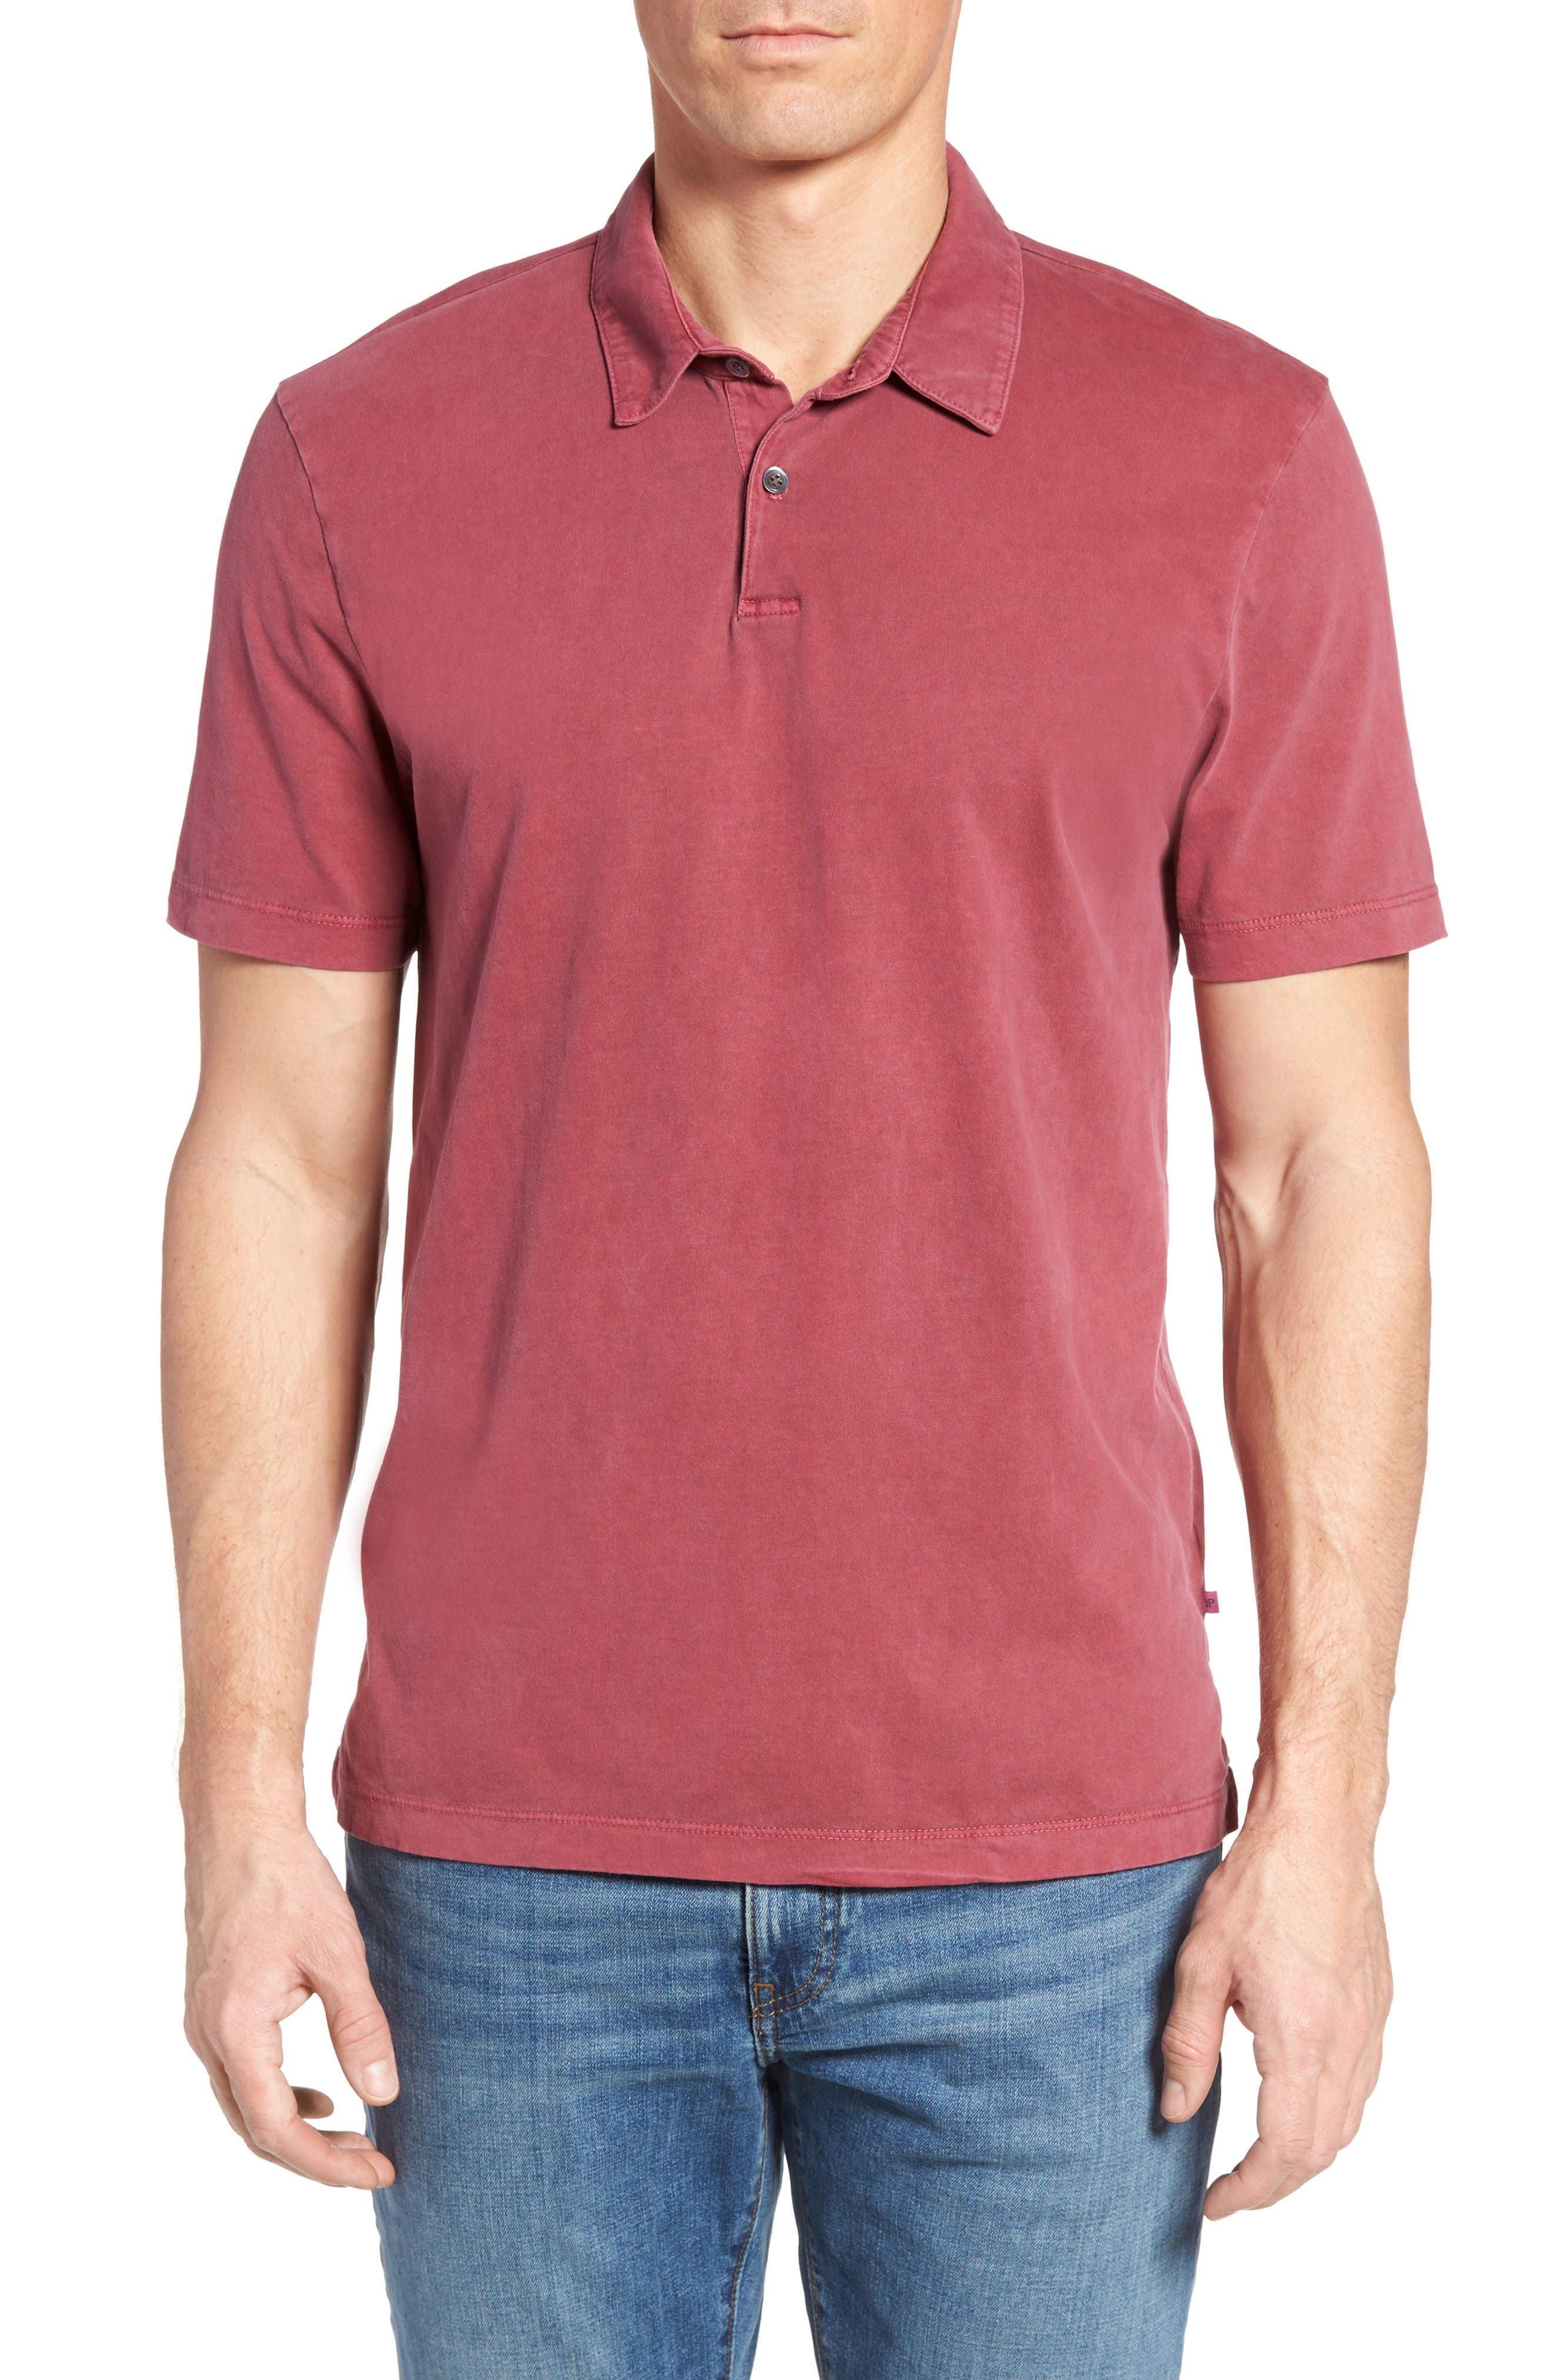 Main Image - James Perse Slim Fit Sueded Jersey Polo